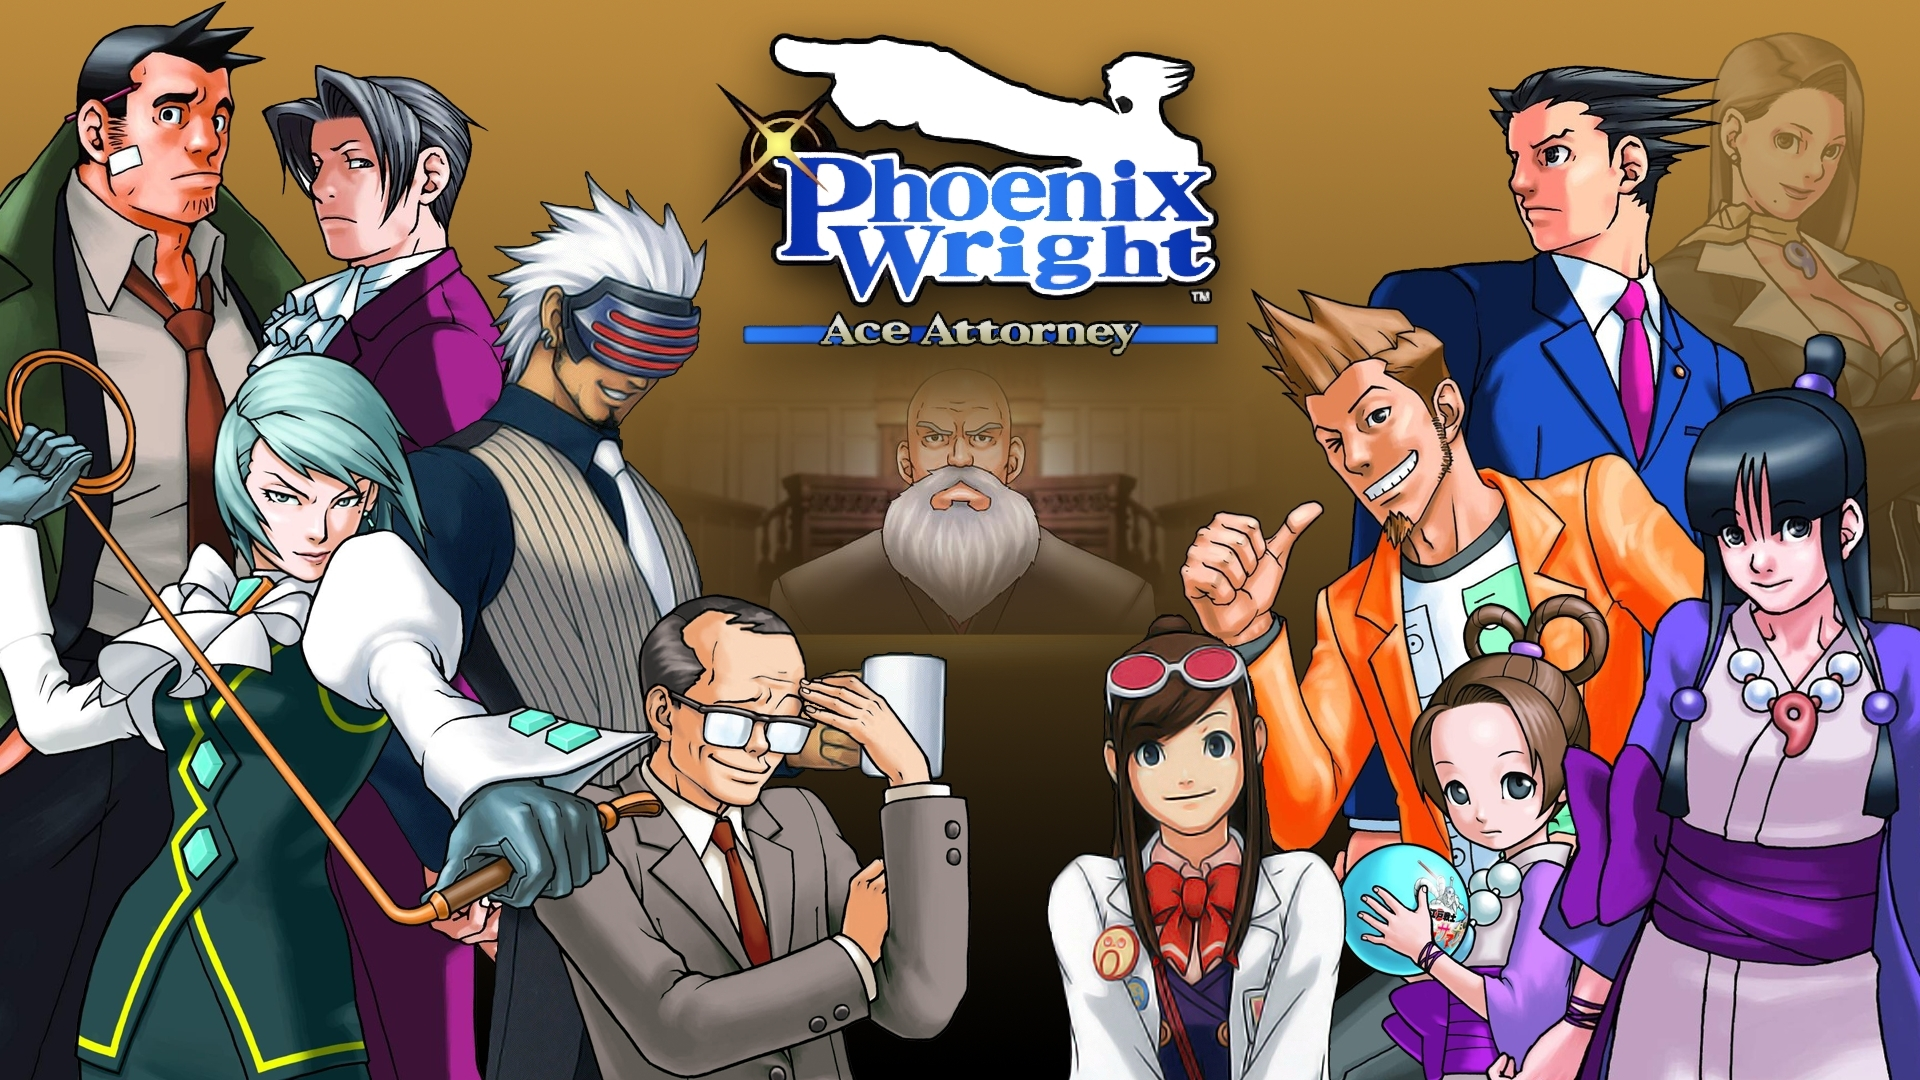 Wallpaper Phoenix Wright Ace Attorney 1920x1080 Wallpaper